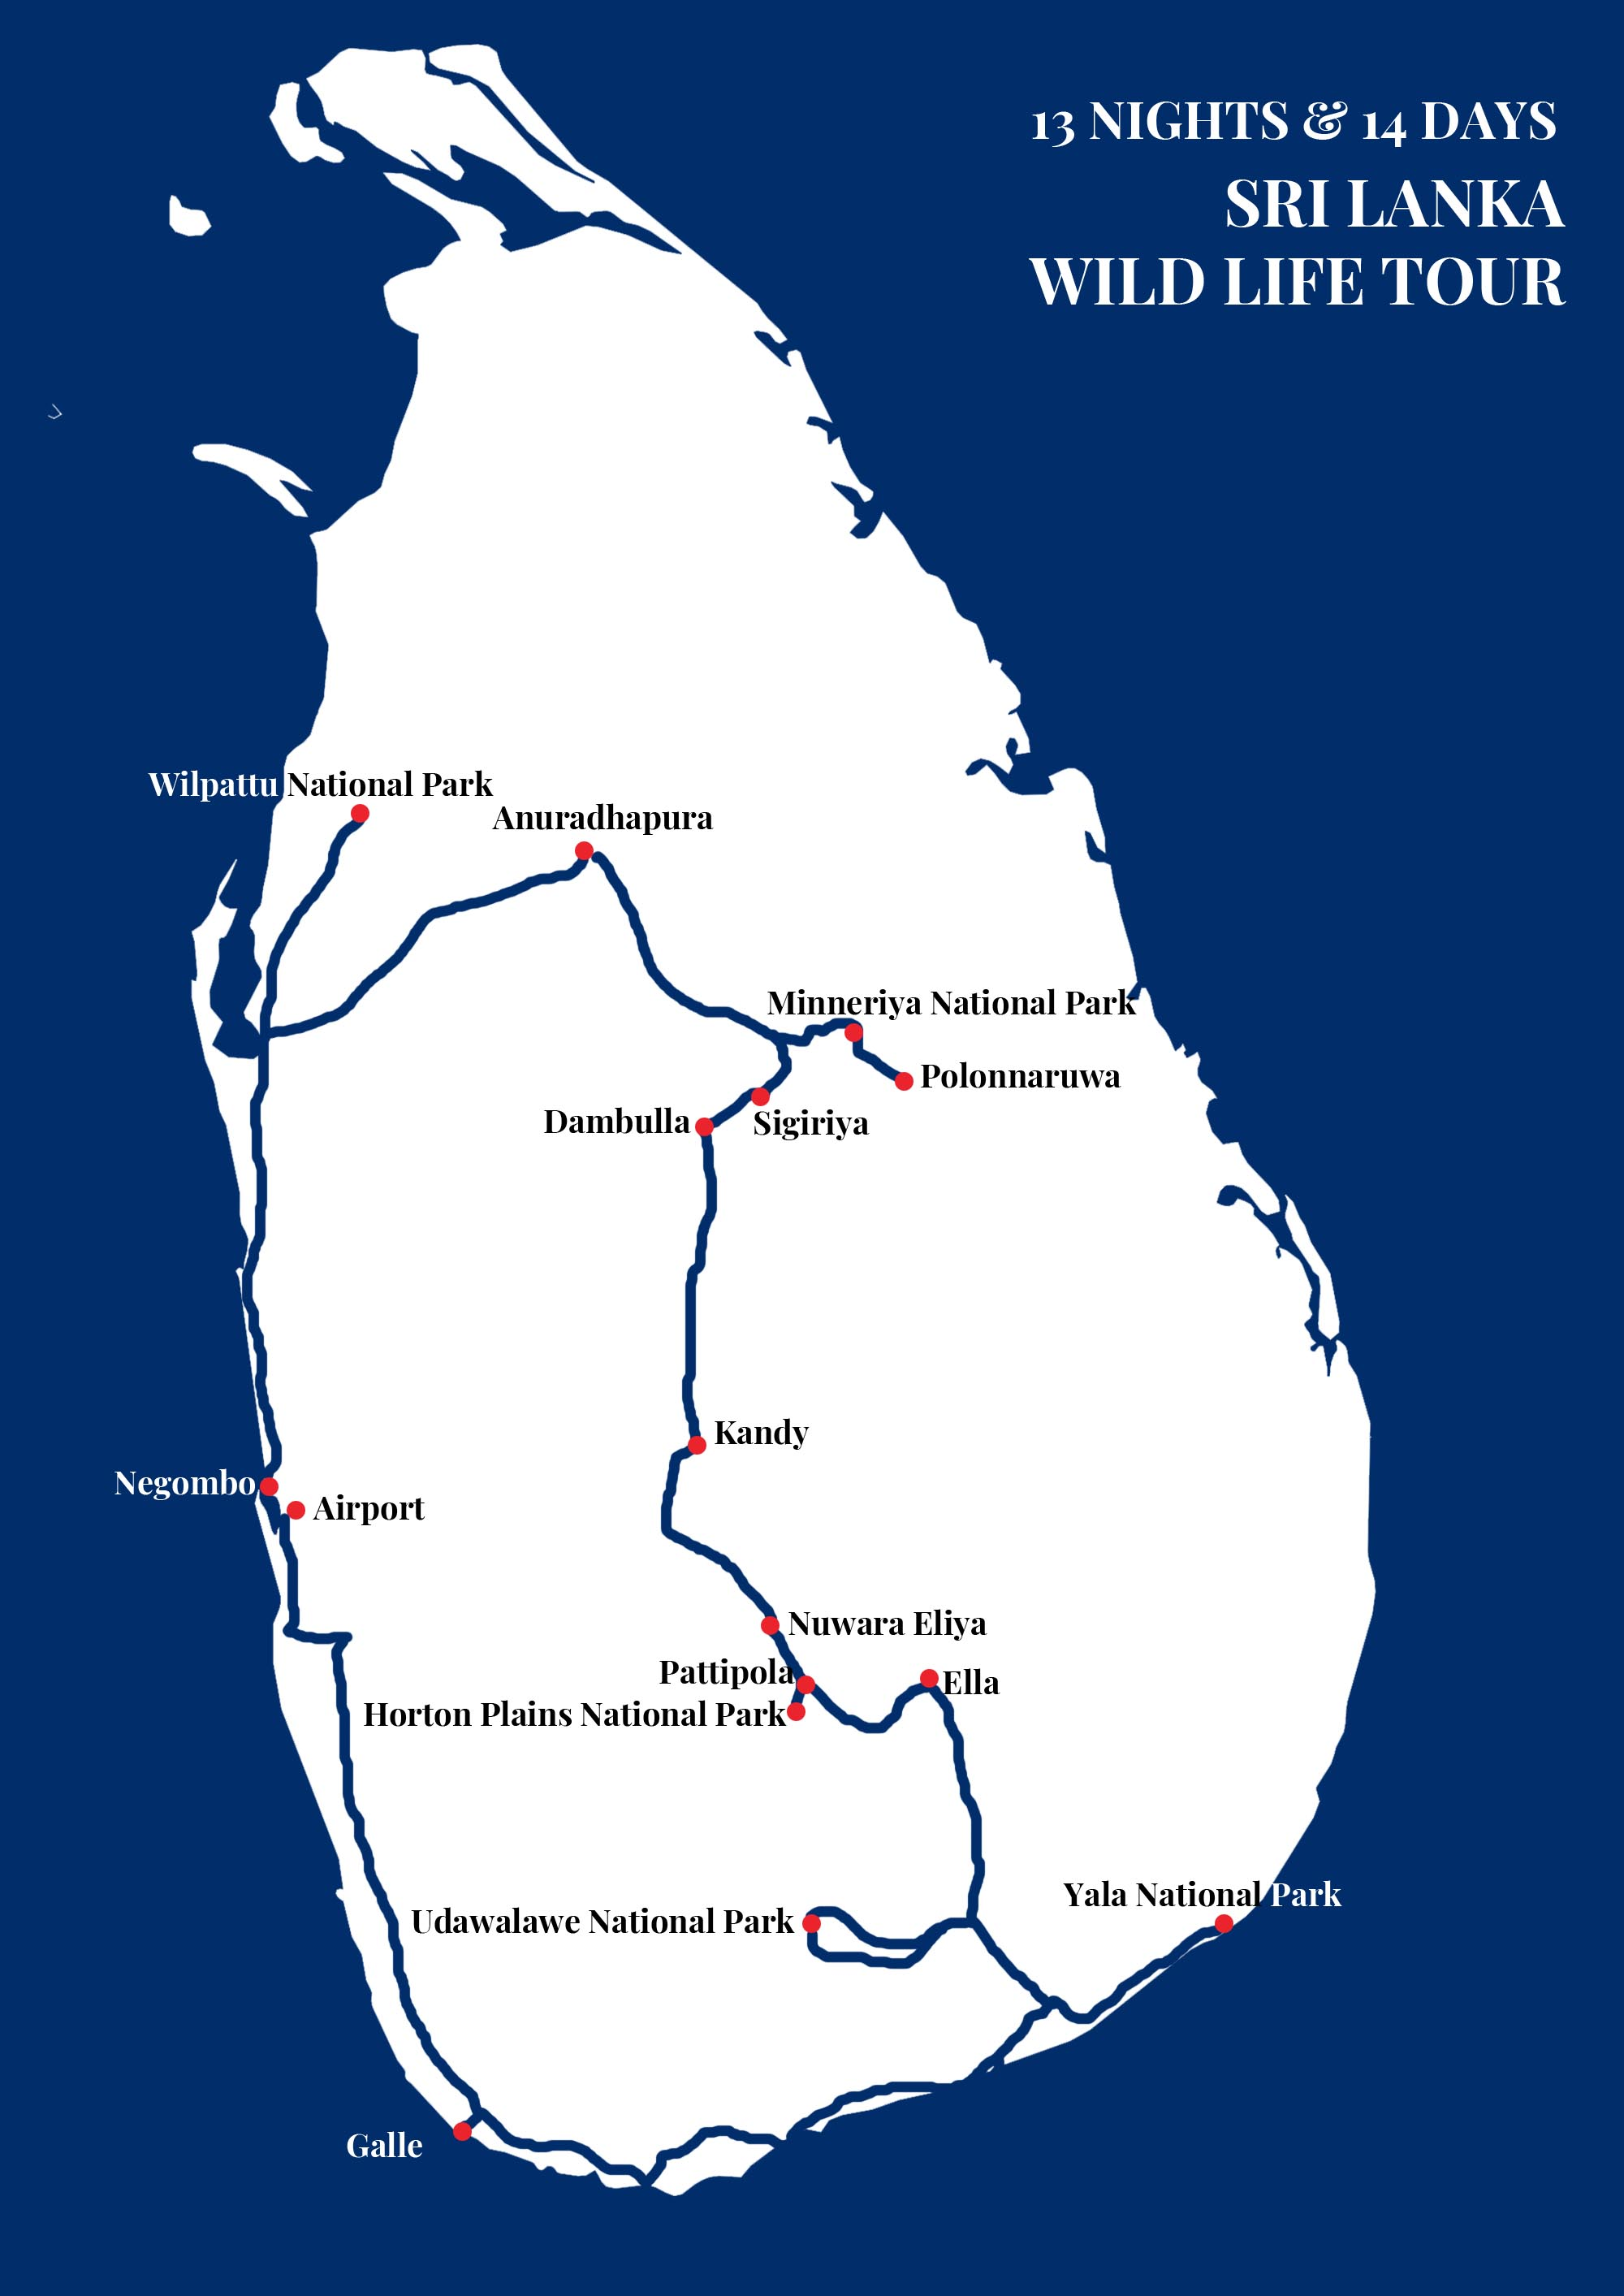 SRI LANKA WILD LIFE TOUR Map